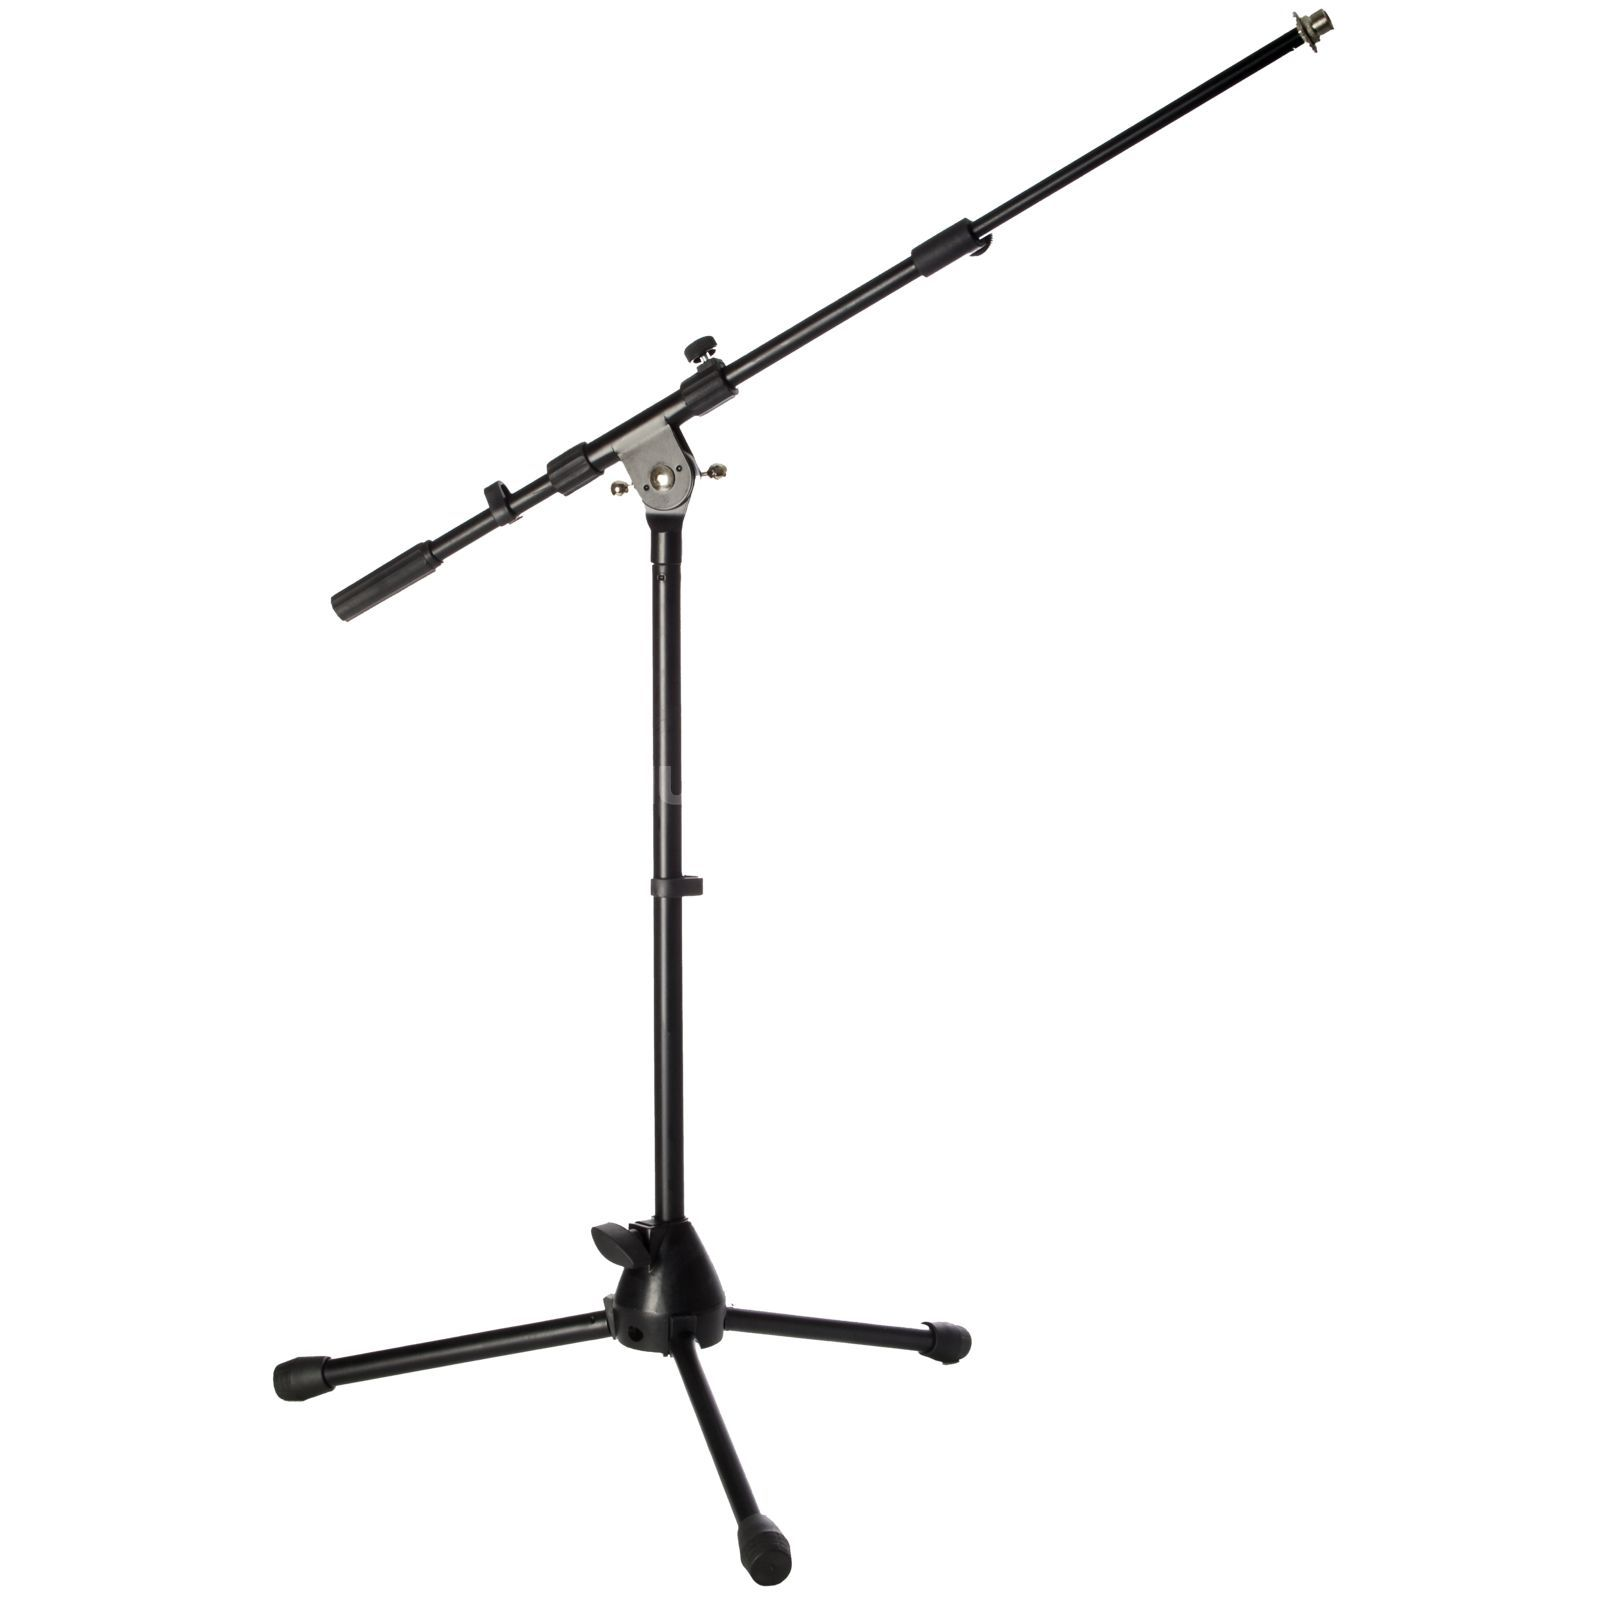 MUSIC STORE MIC 7E Microphone Stand Black Produktbillede